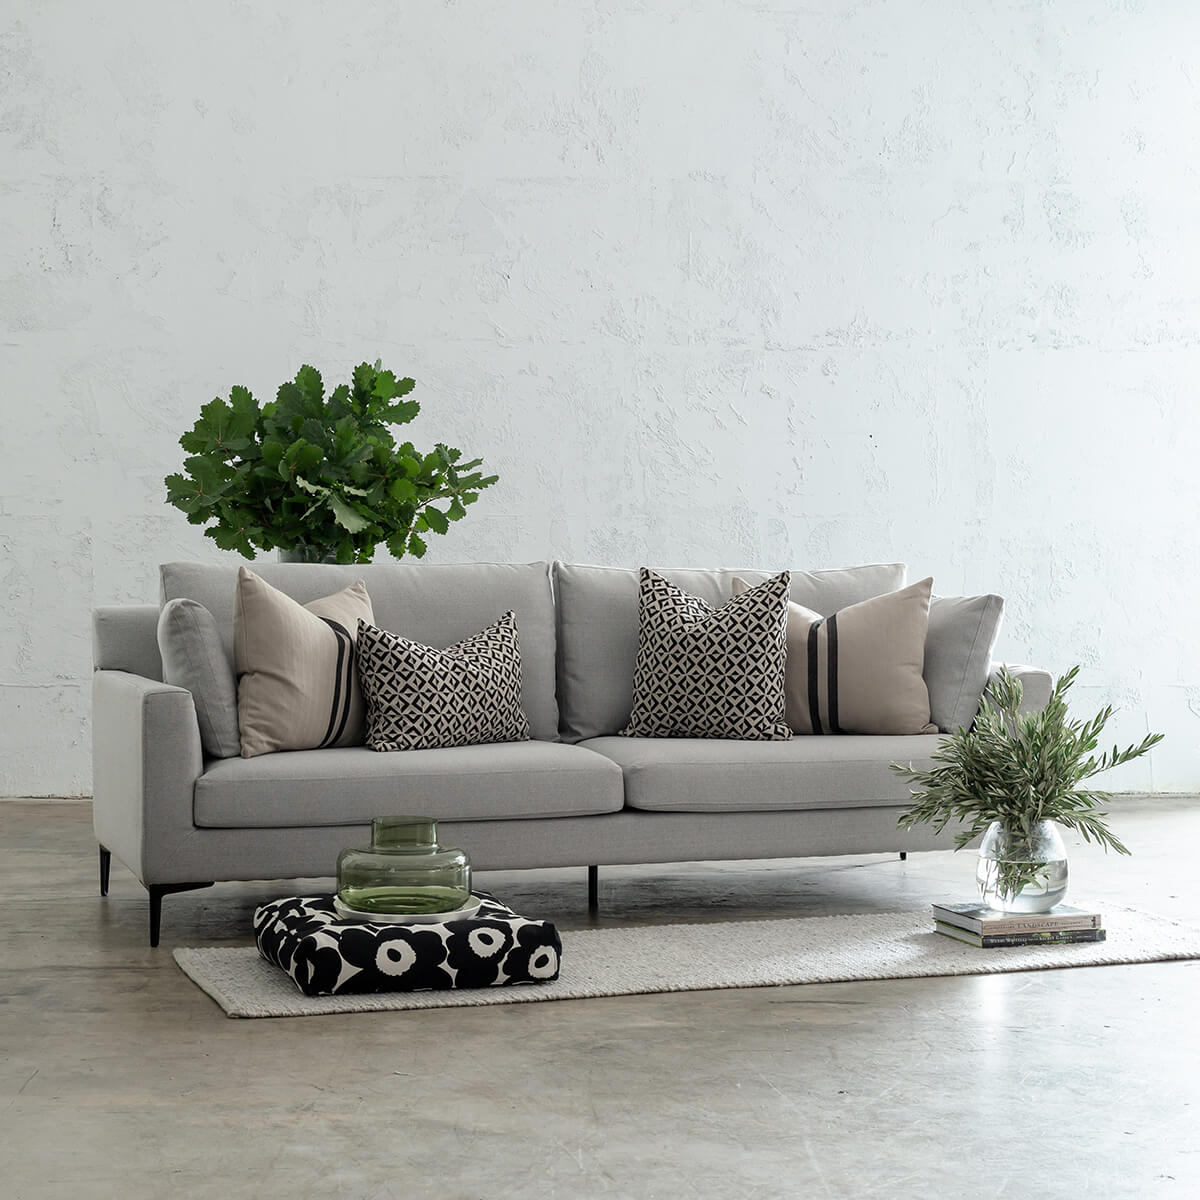 LUGANO 3.5 SEATER SOFA  |  COBBLESTONE ASH WEAVE  |  LOUNGE FURNITURE